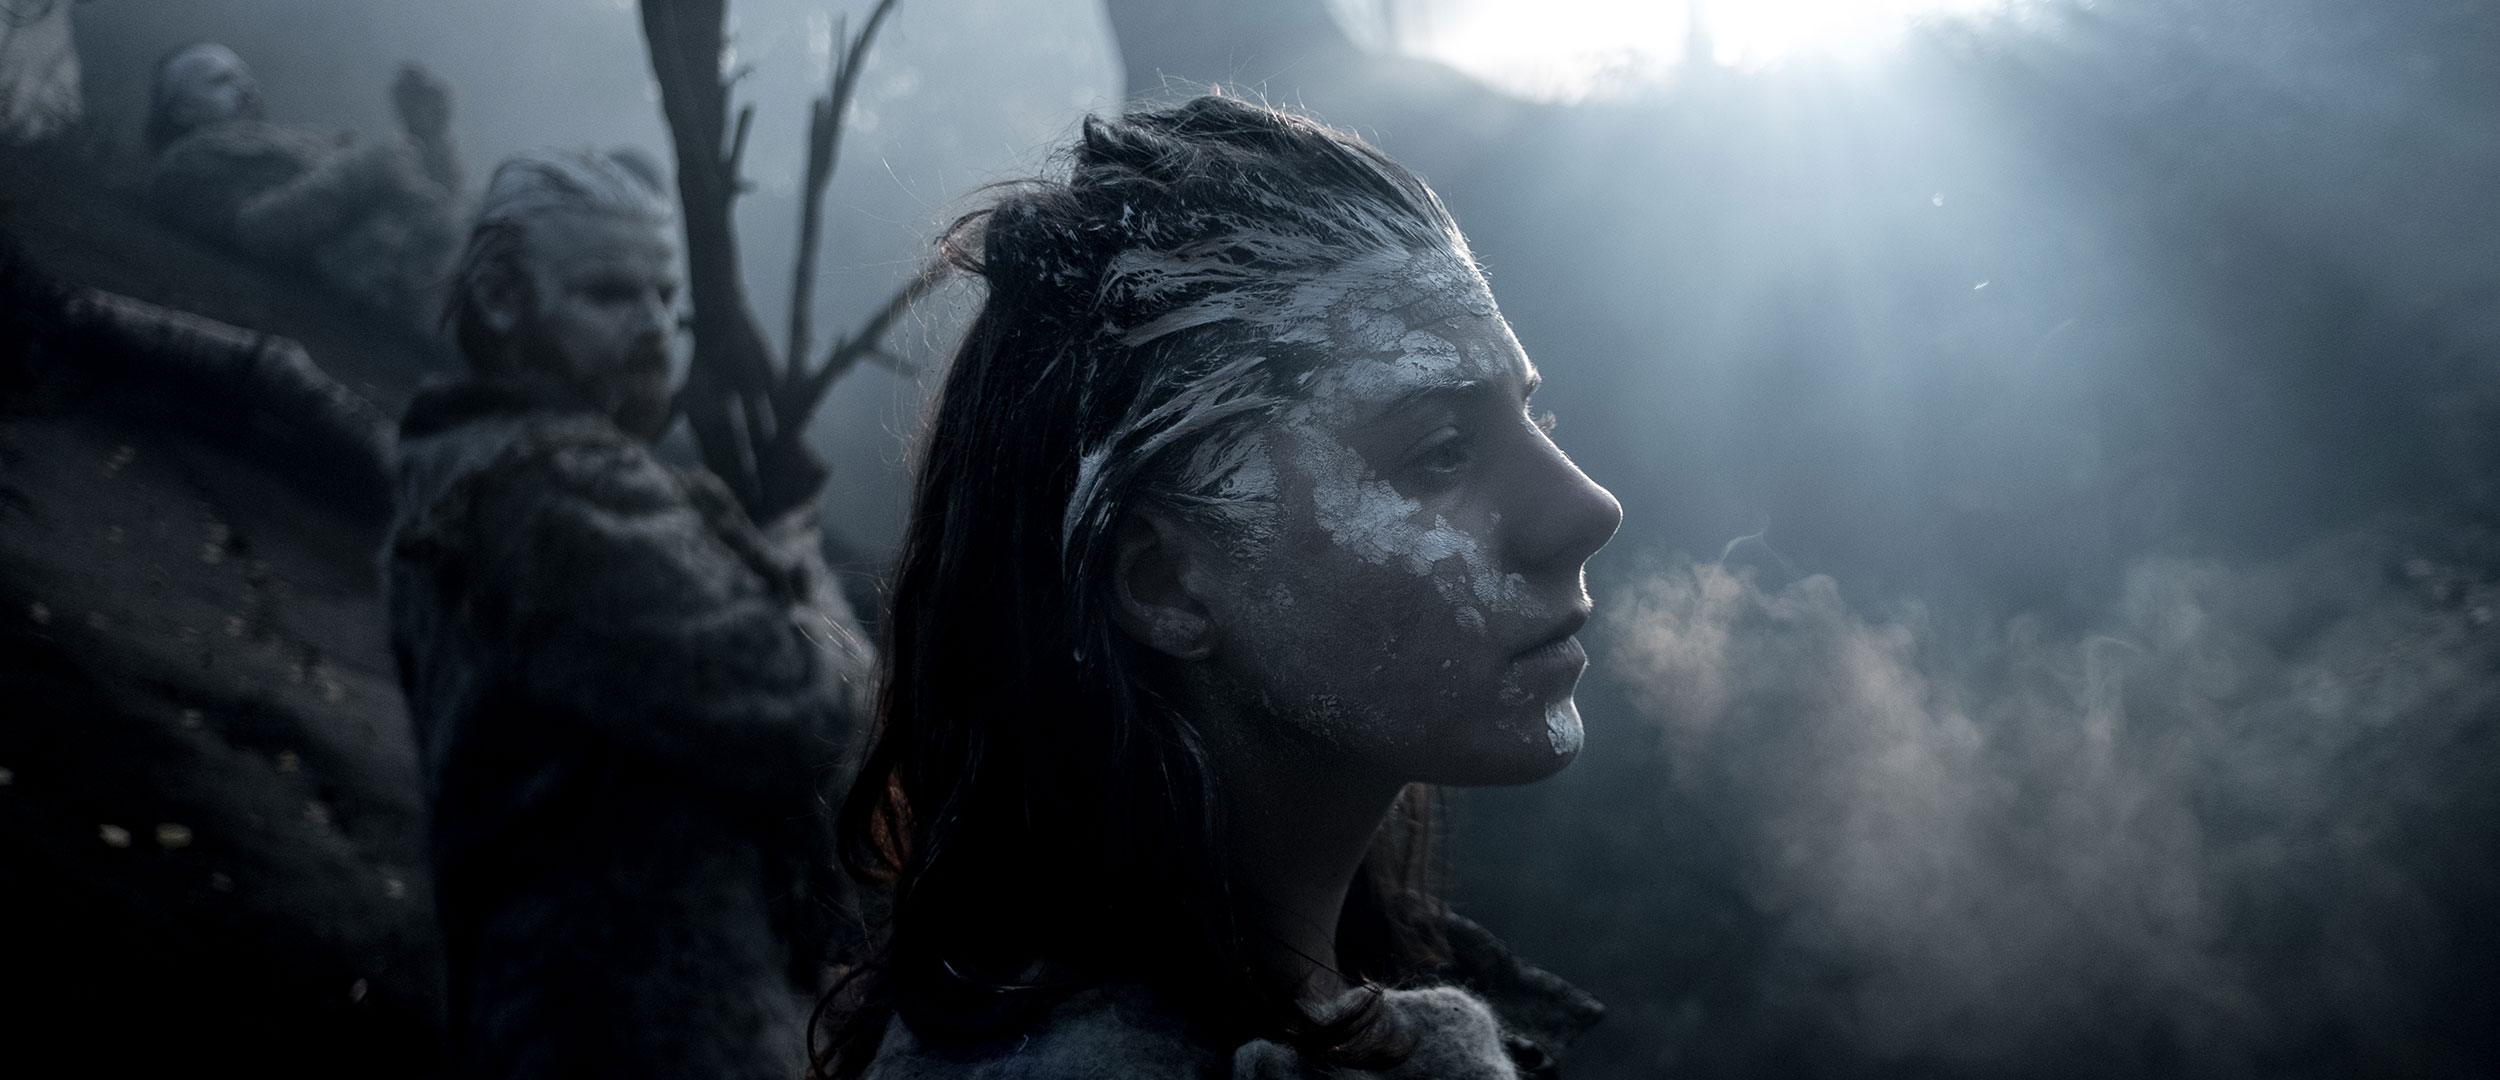 Compétition internationale